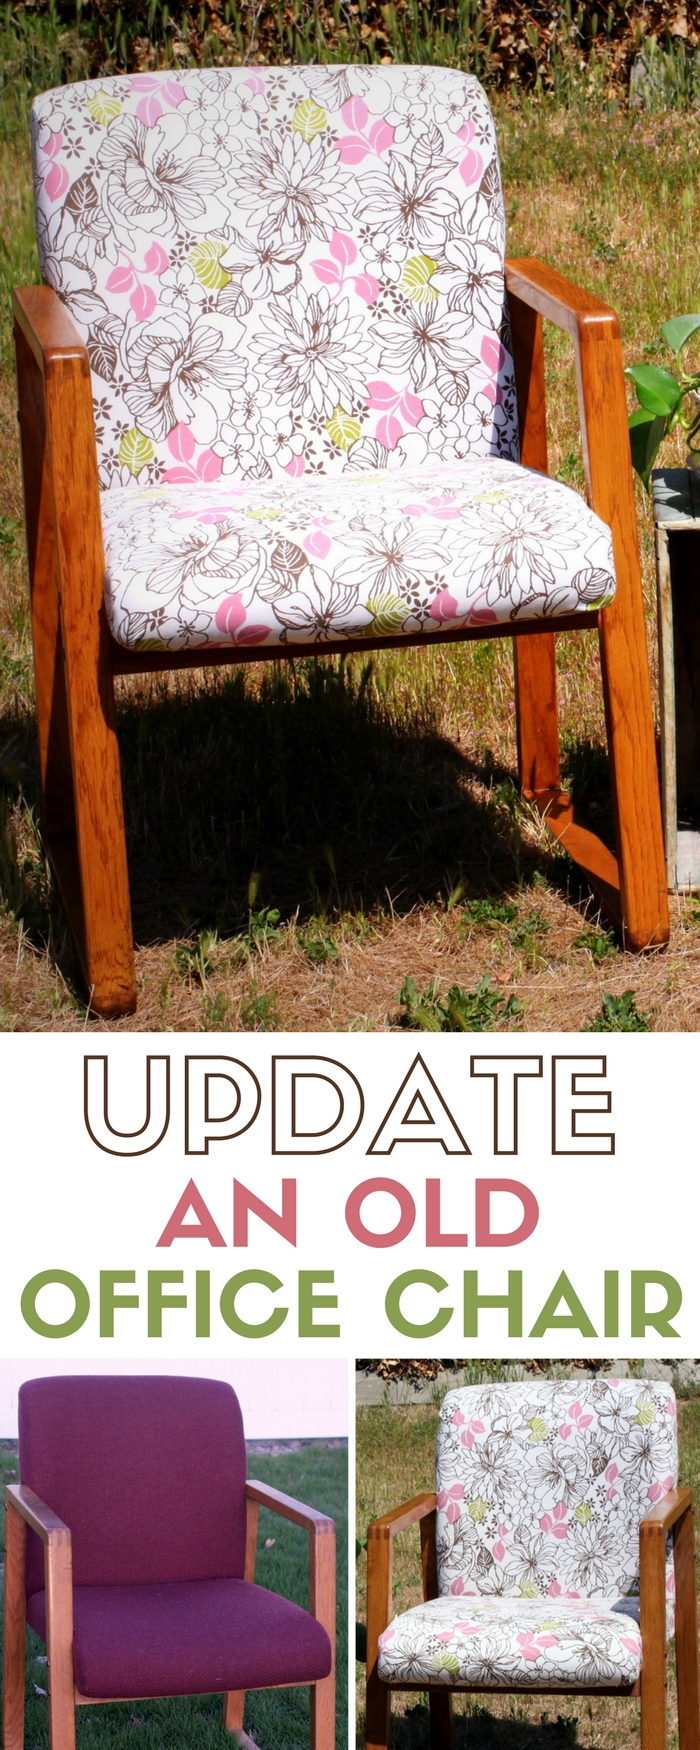 Update an Old Office Chair | Upholstery | Home Decor | Furniture Makeover | Fabrics | DIY